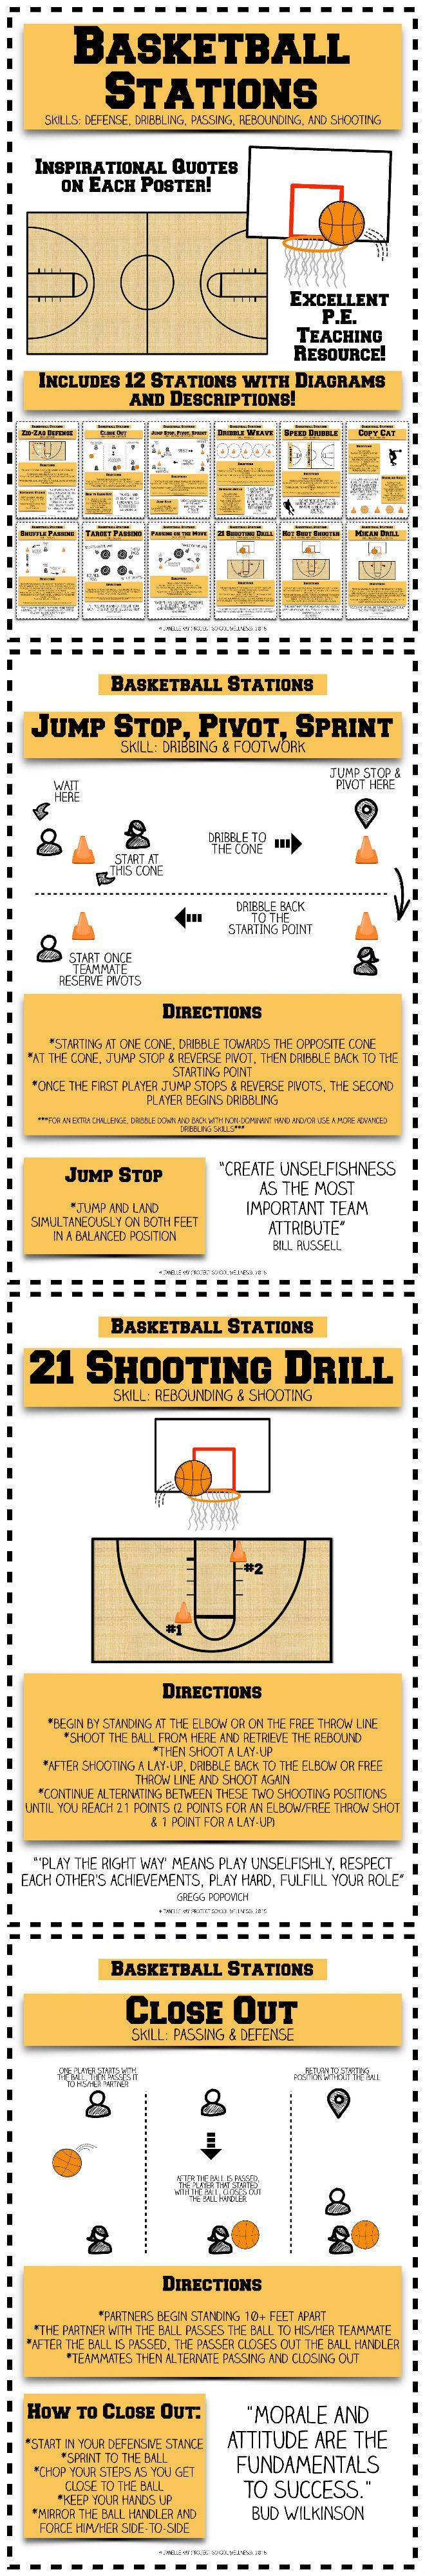 Basketball Stations - PE Stations - PE Resources Get the best tips on how to increase your vertical jump here: